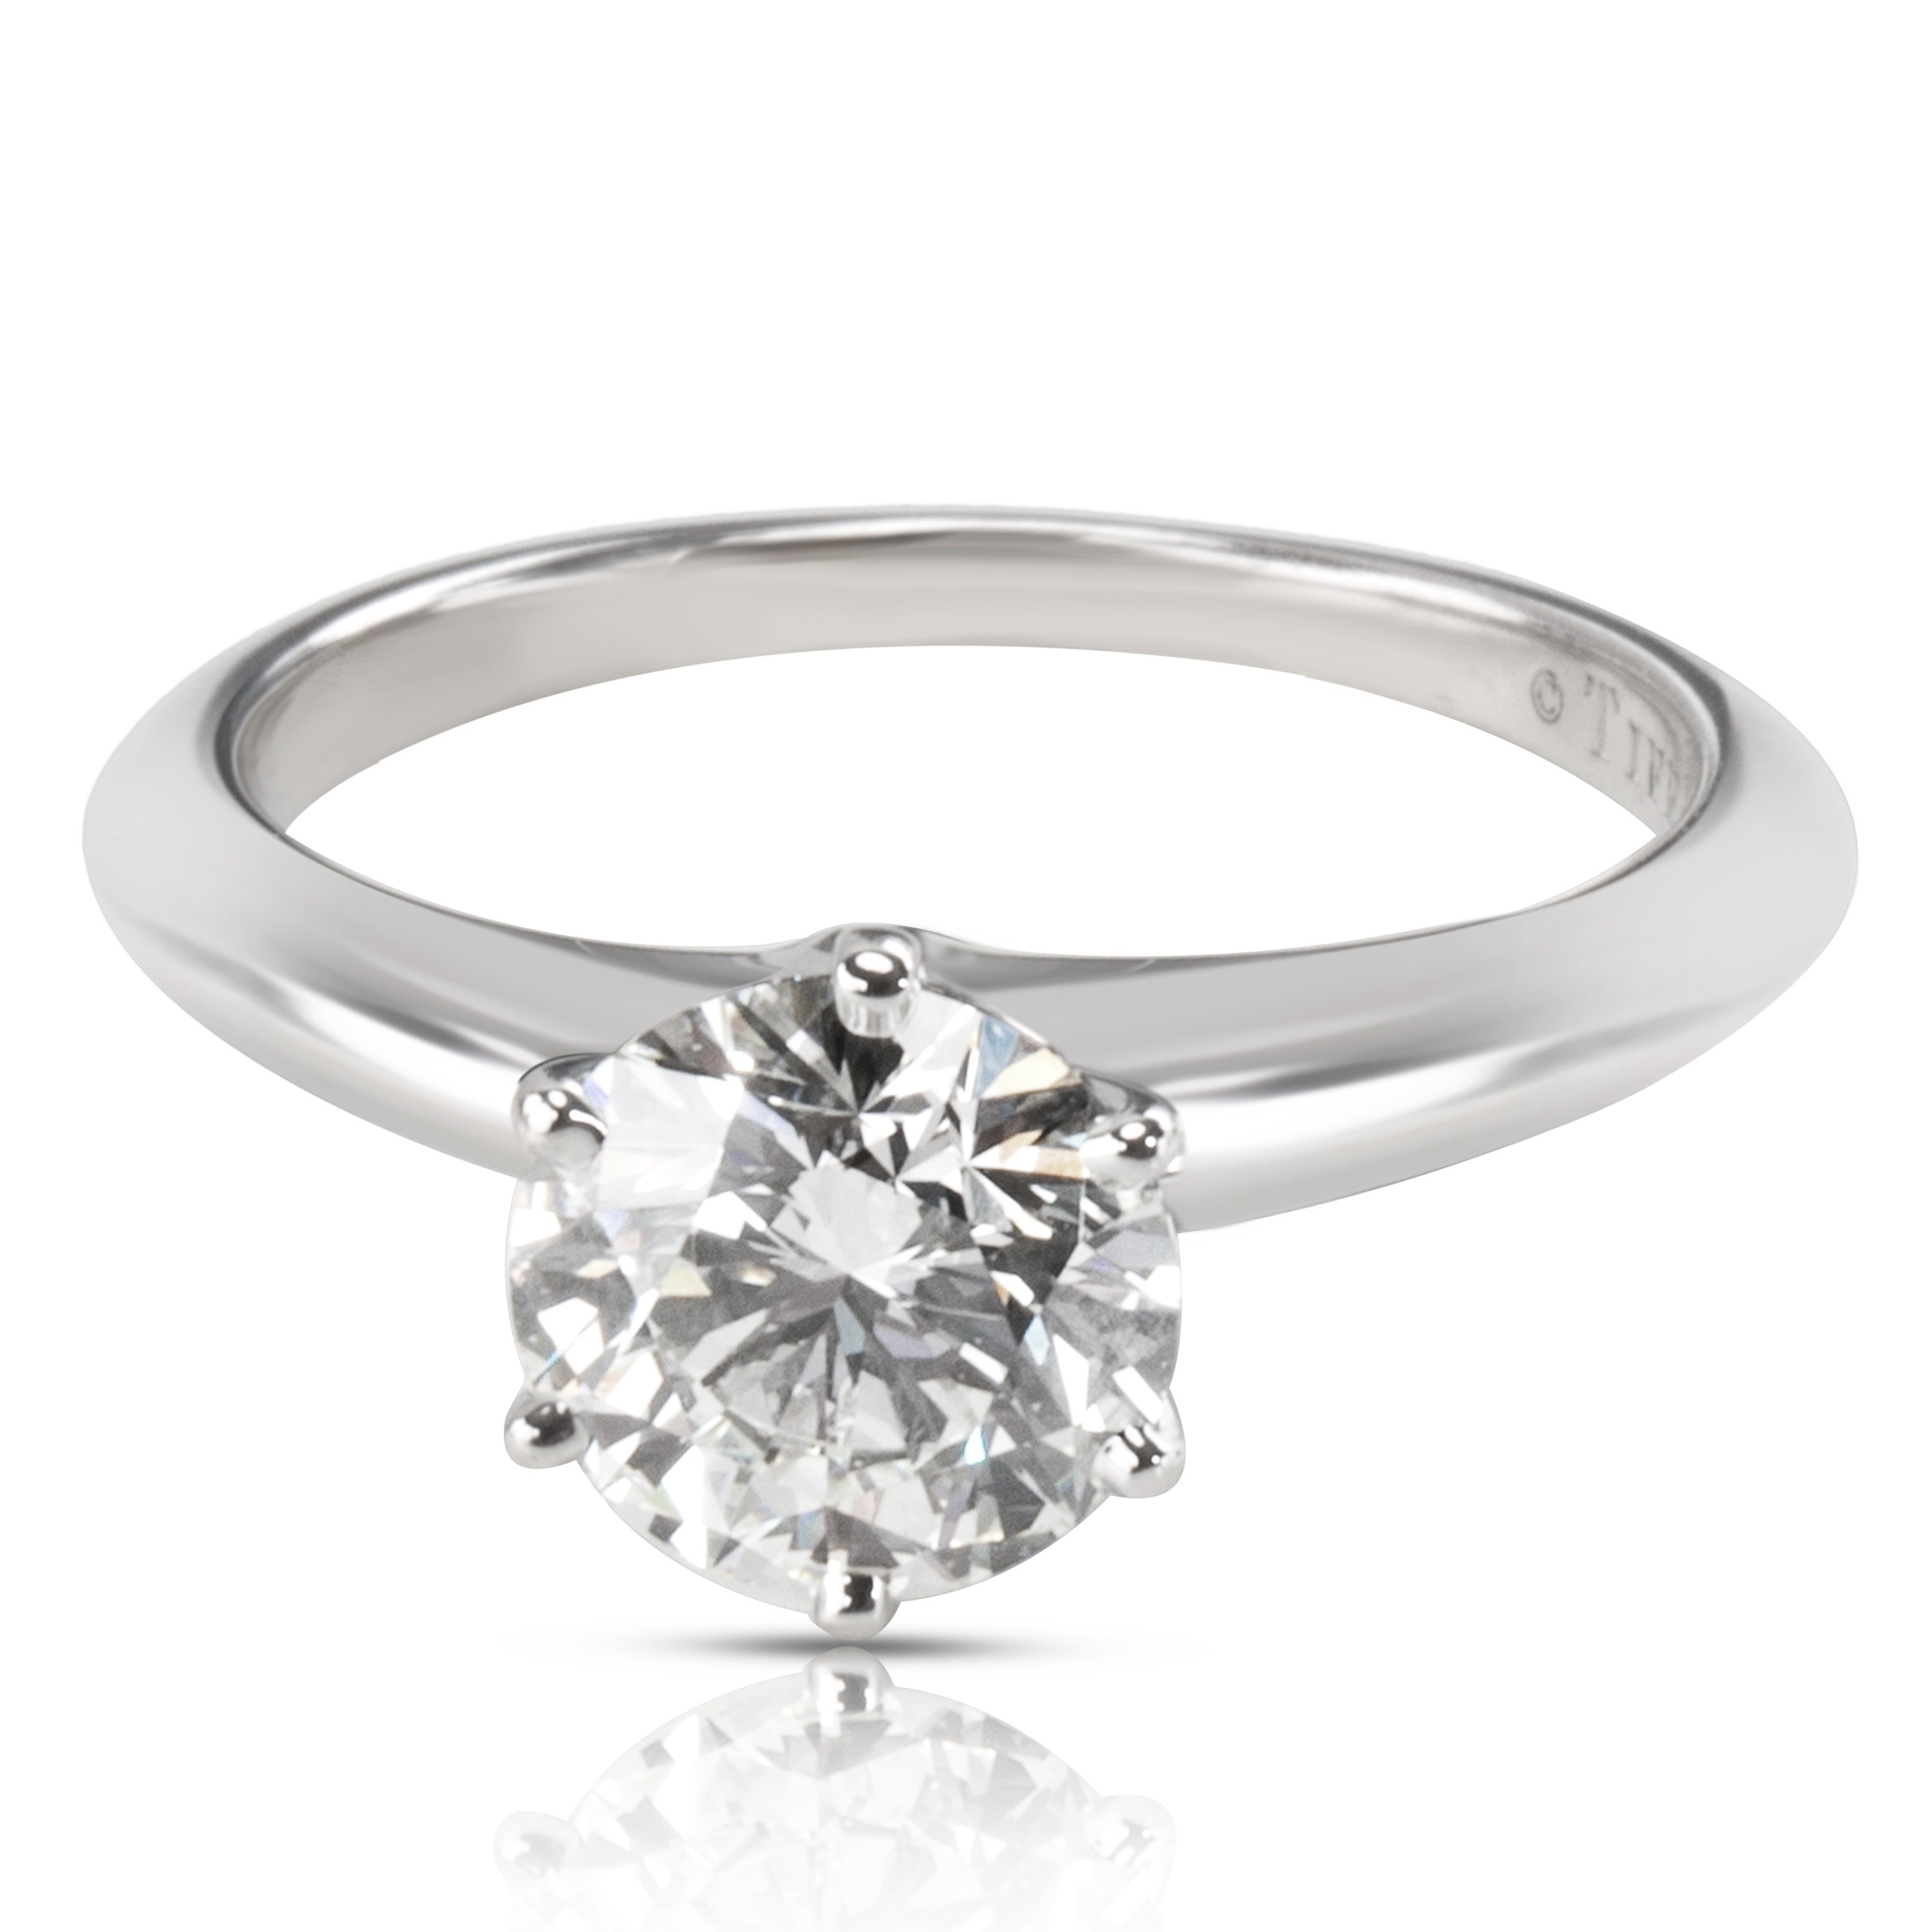 Pre Owned Tiffany Co Diamond Engagement Ring In Platinum 1 52 Ctw H Vvs1 Free Shipping Today 23056611